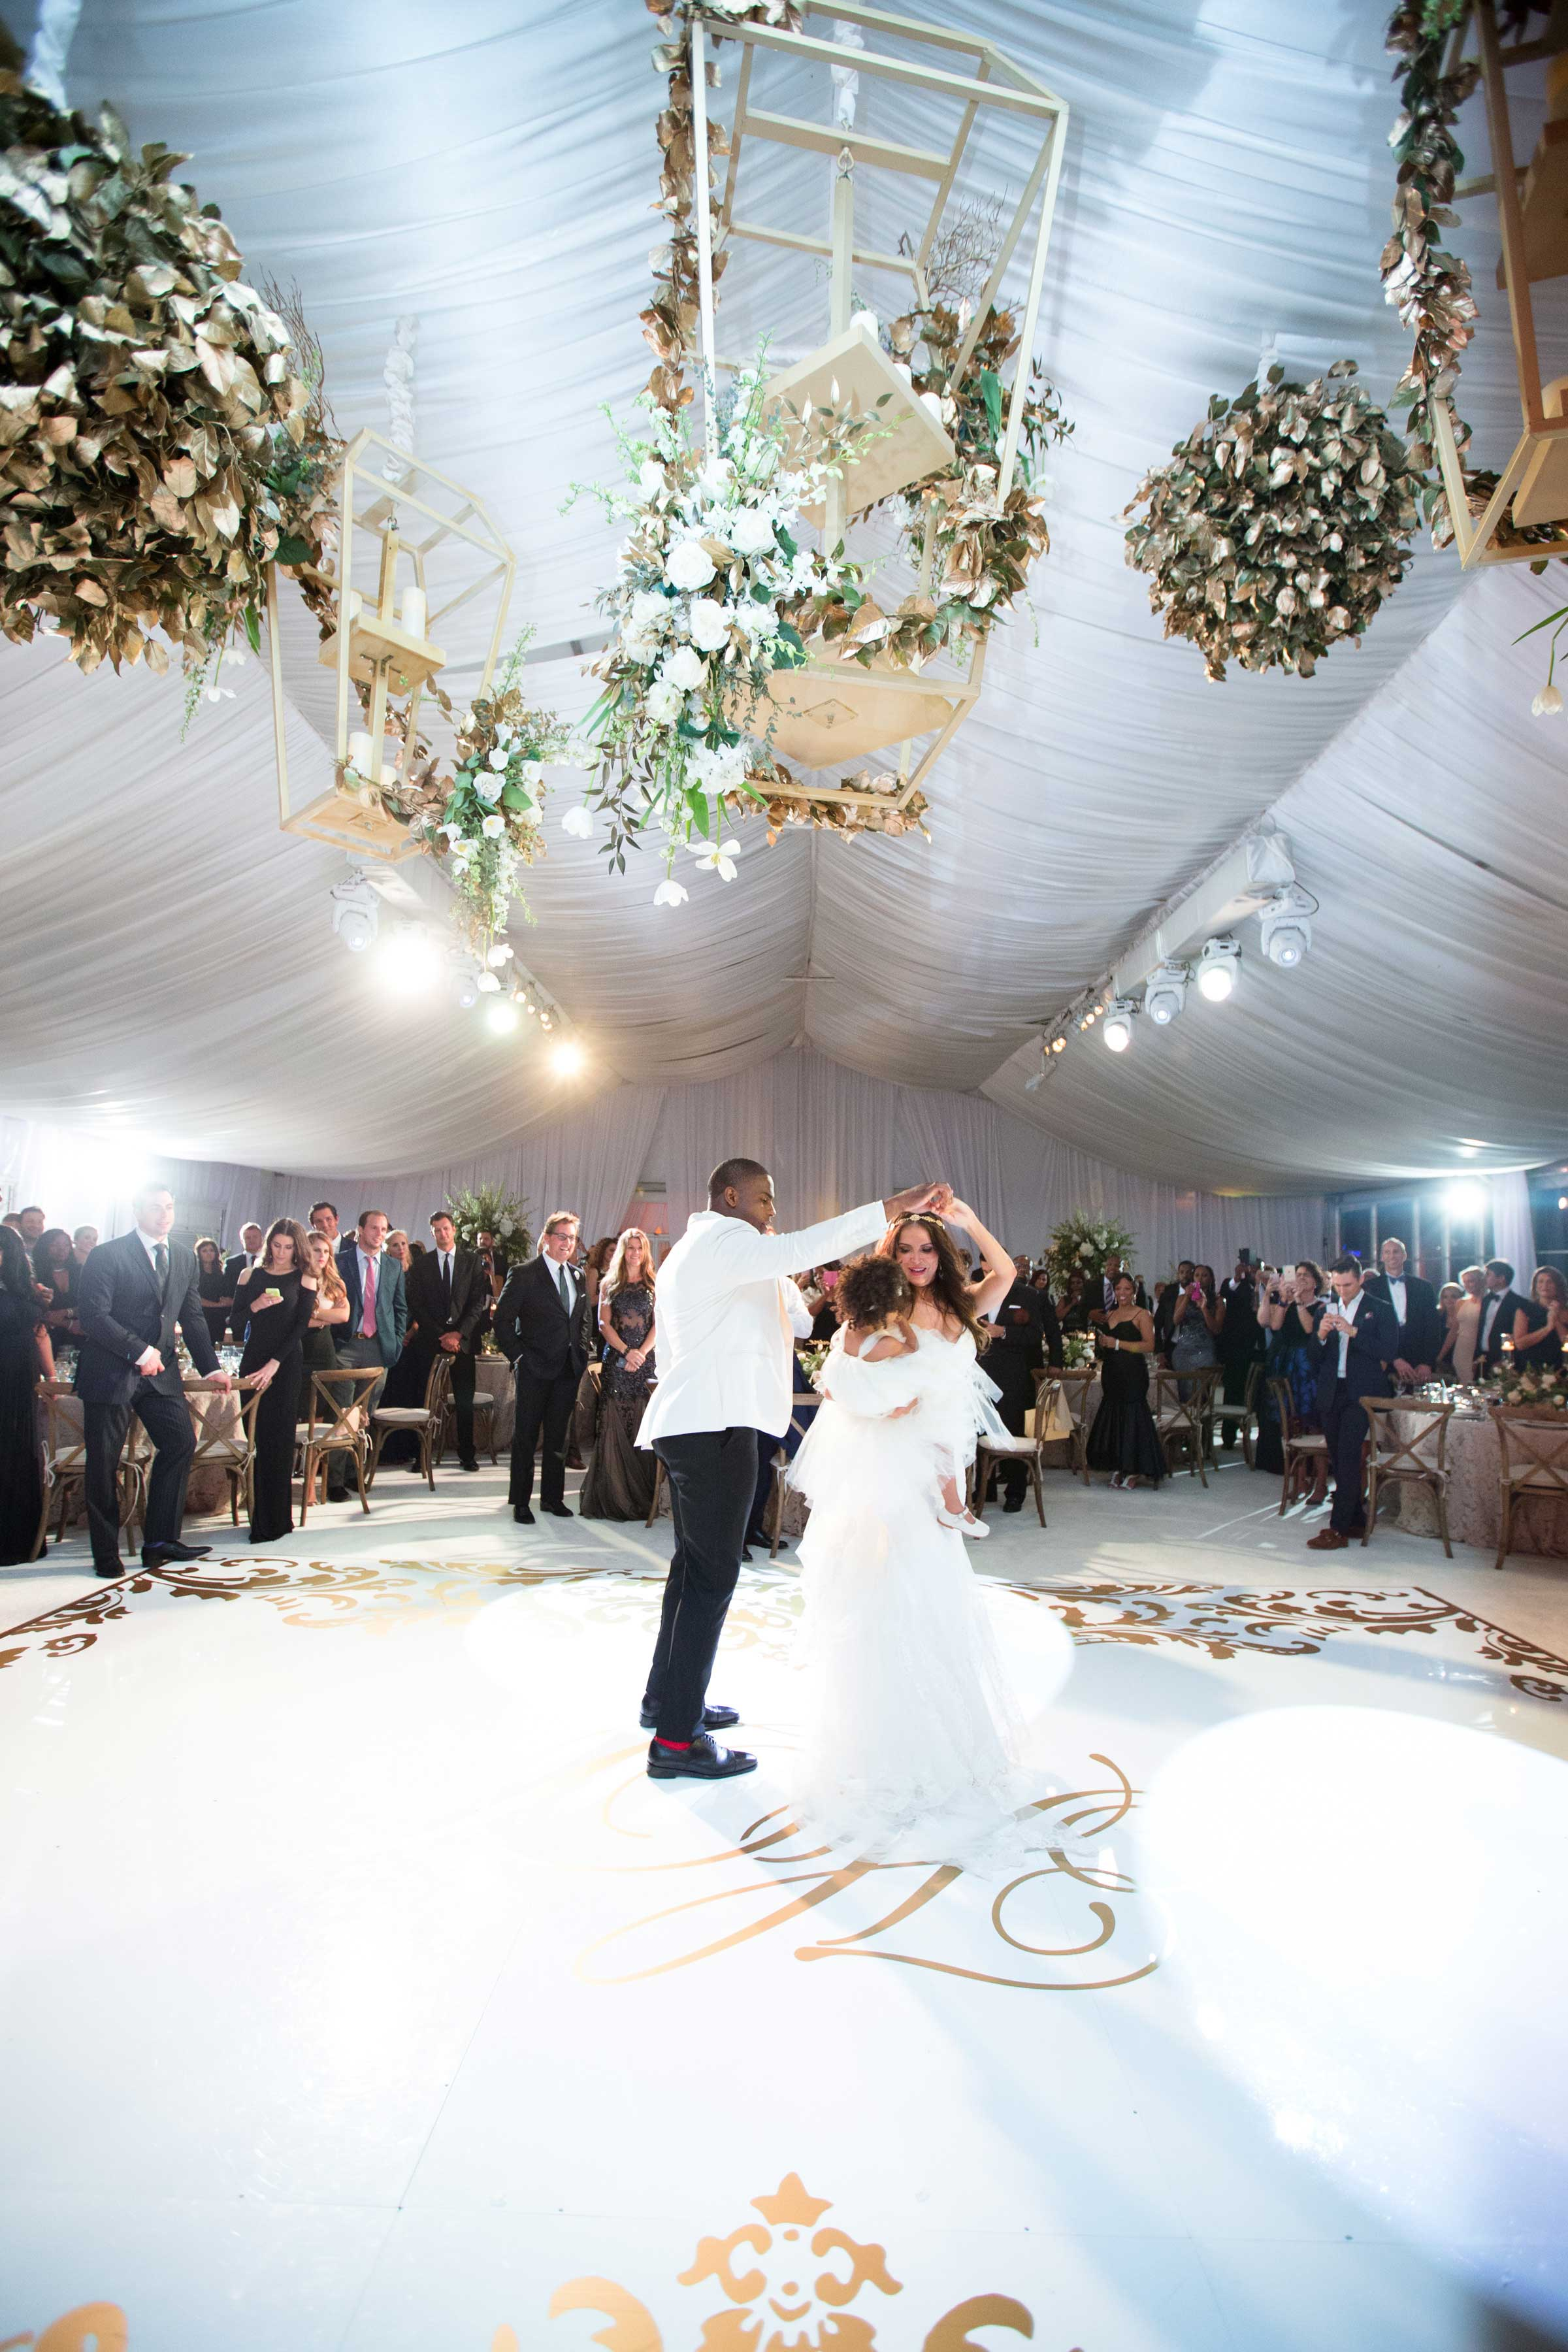 Demarco Murray and Heidi Mueller dancing with daughter on dance floor under large lanterns